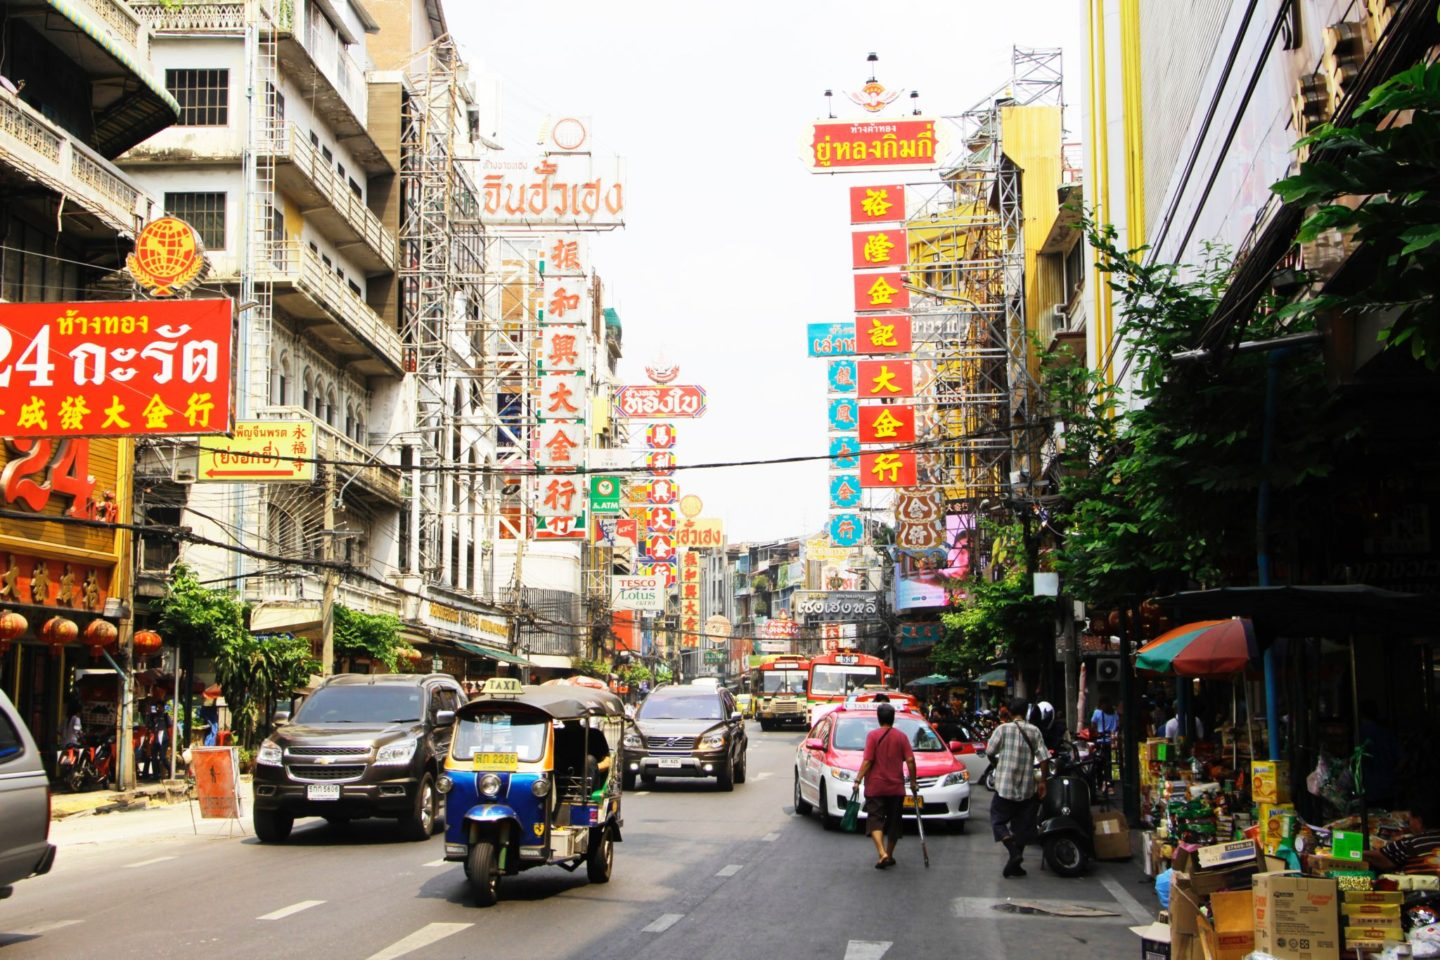 Picture of streets of Chinatown, Bangkok Thailand